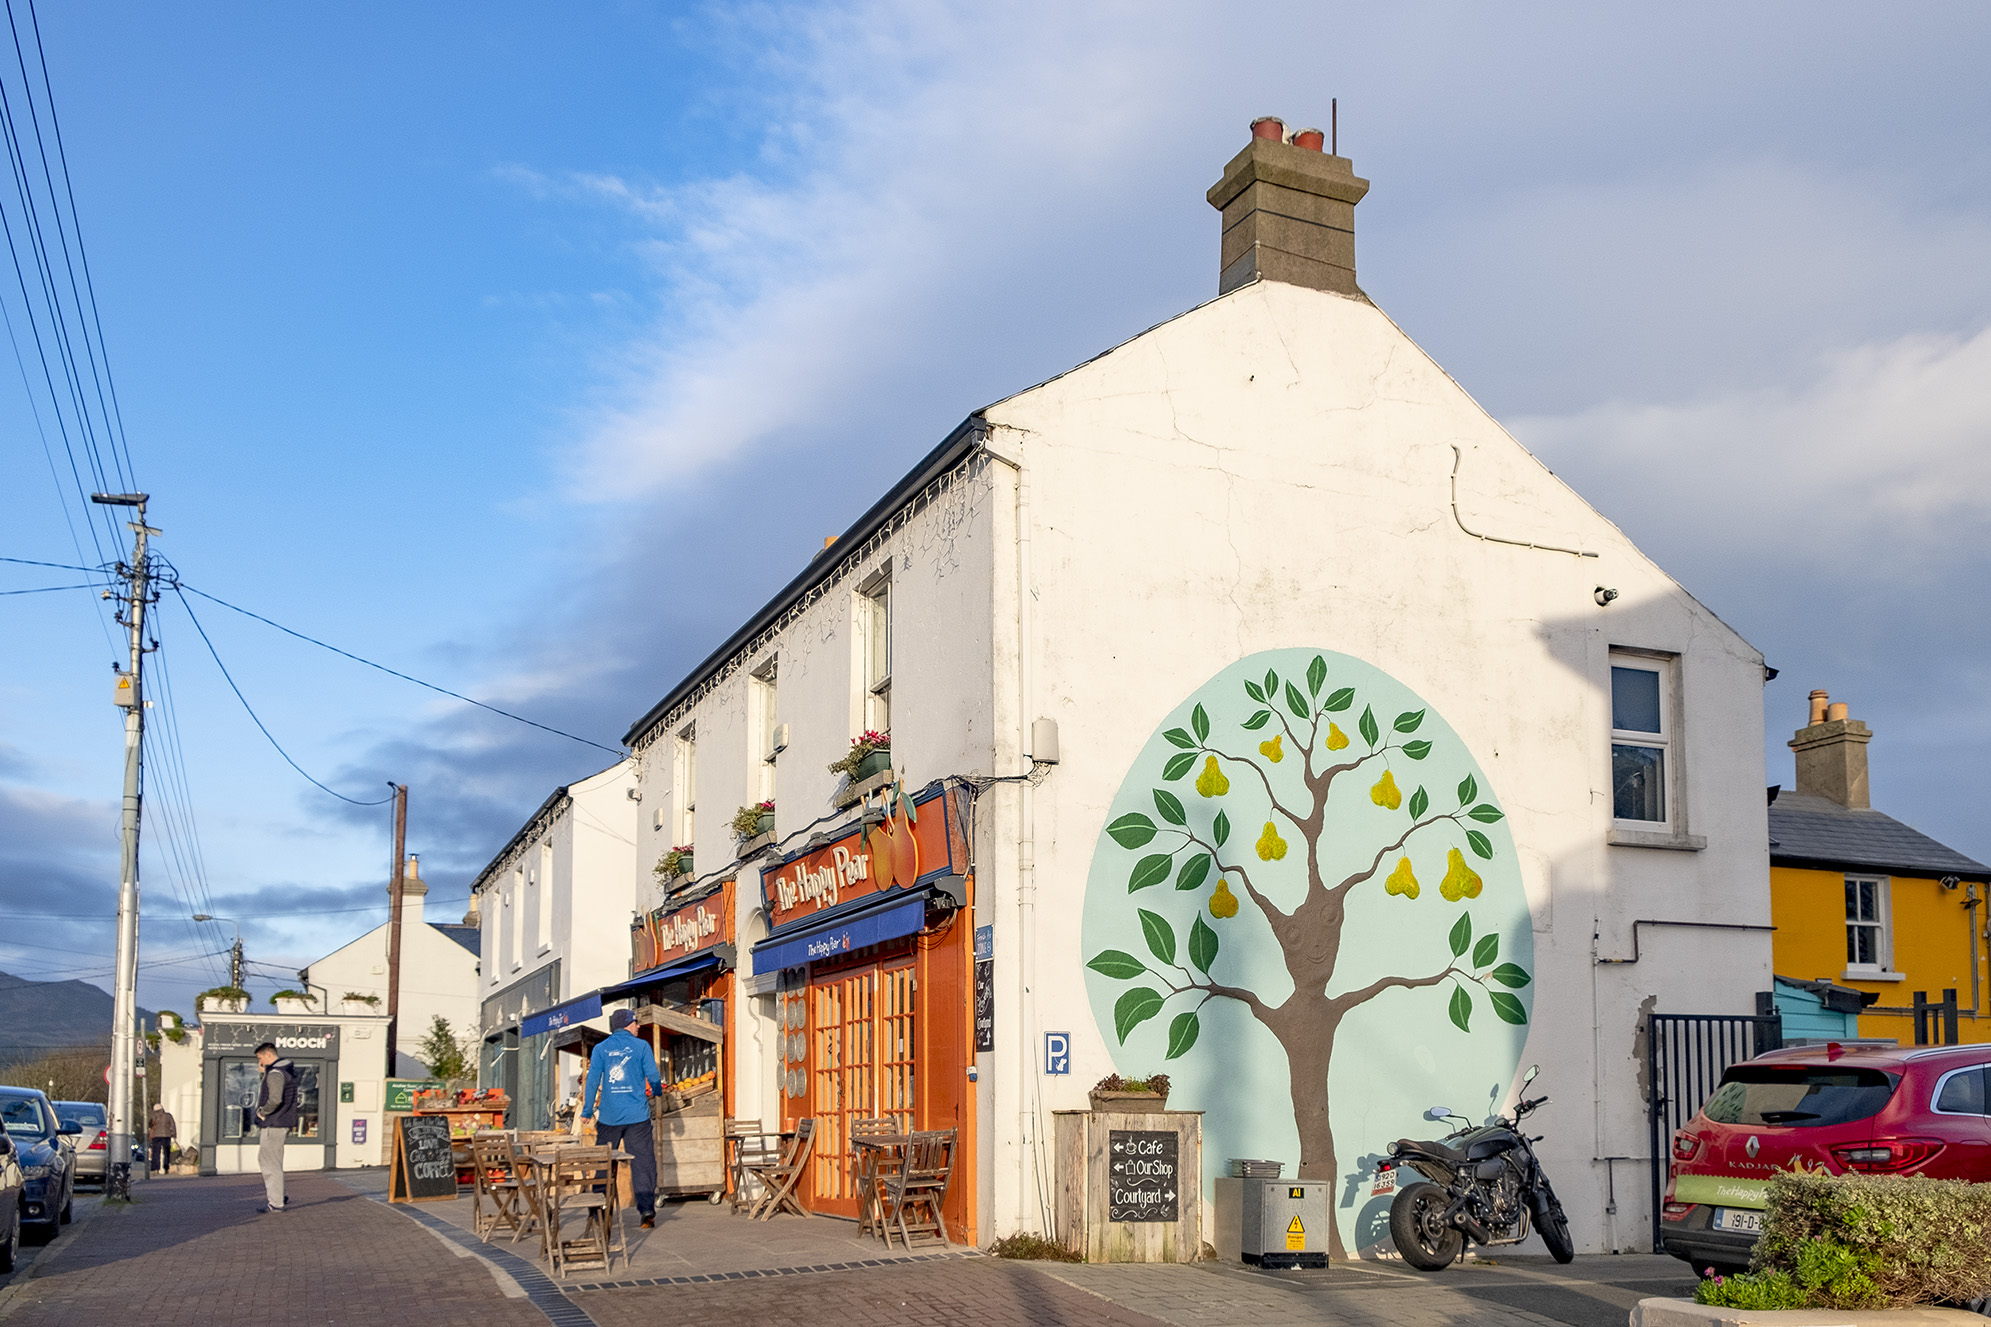 The Happy Pear Greystones